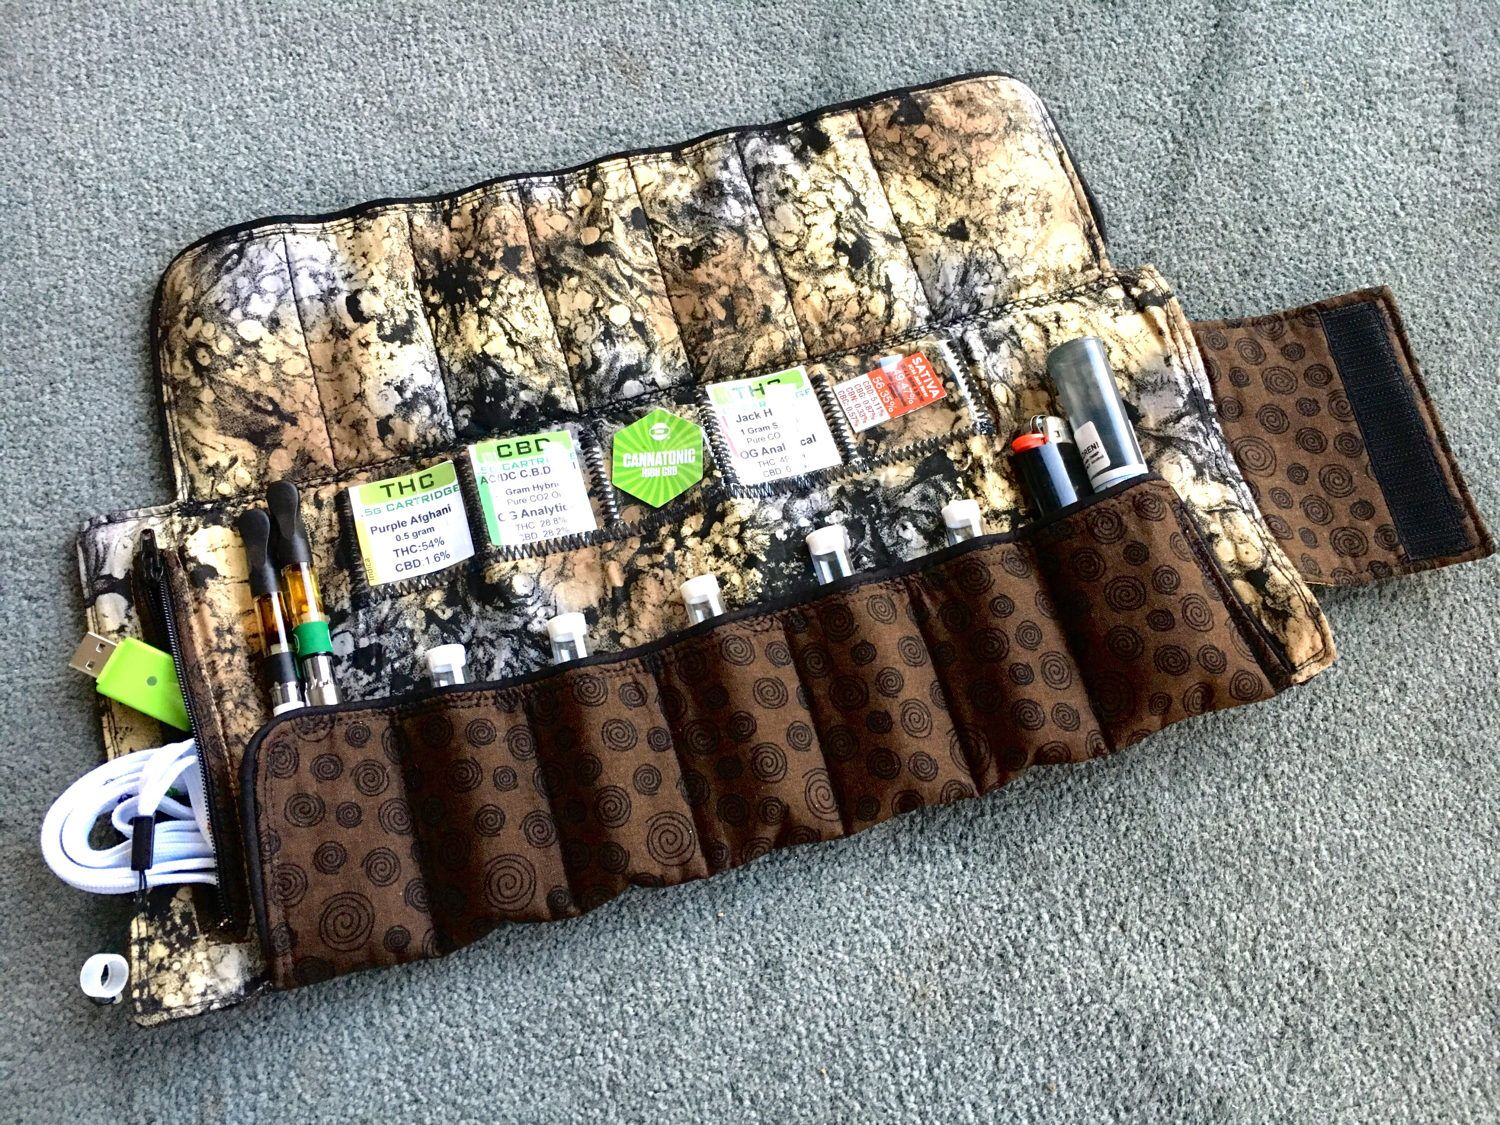 Vape pen cartridge storage case bag Organjanizer© | Do you